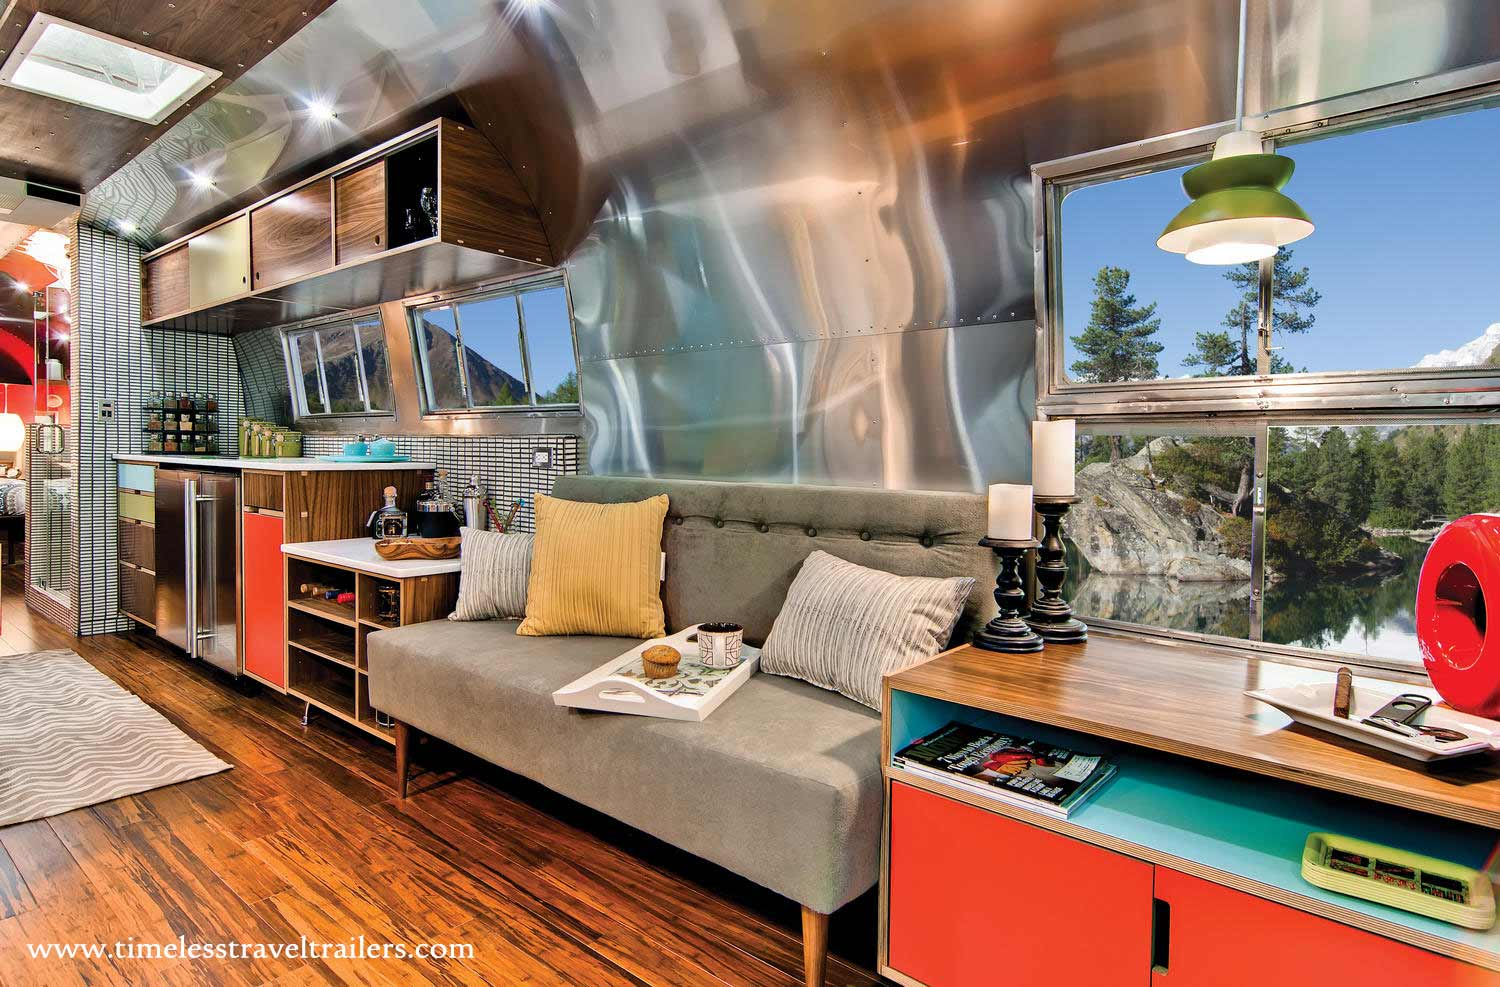 Western pacific airstream timeless travel trailers for Interior site